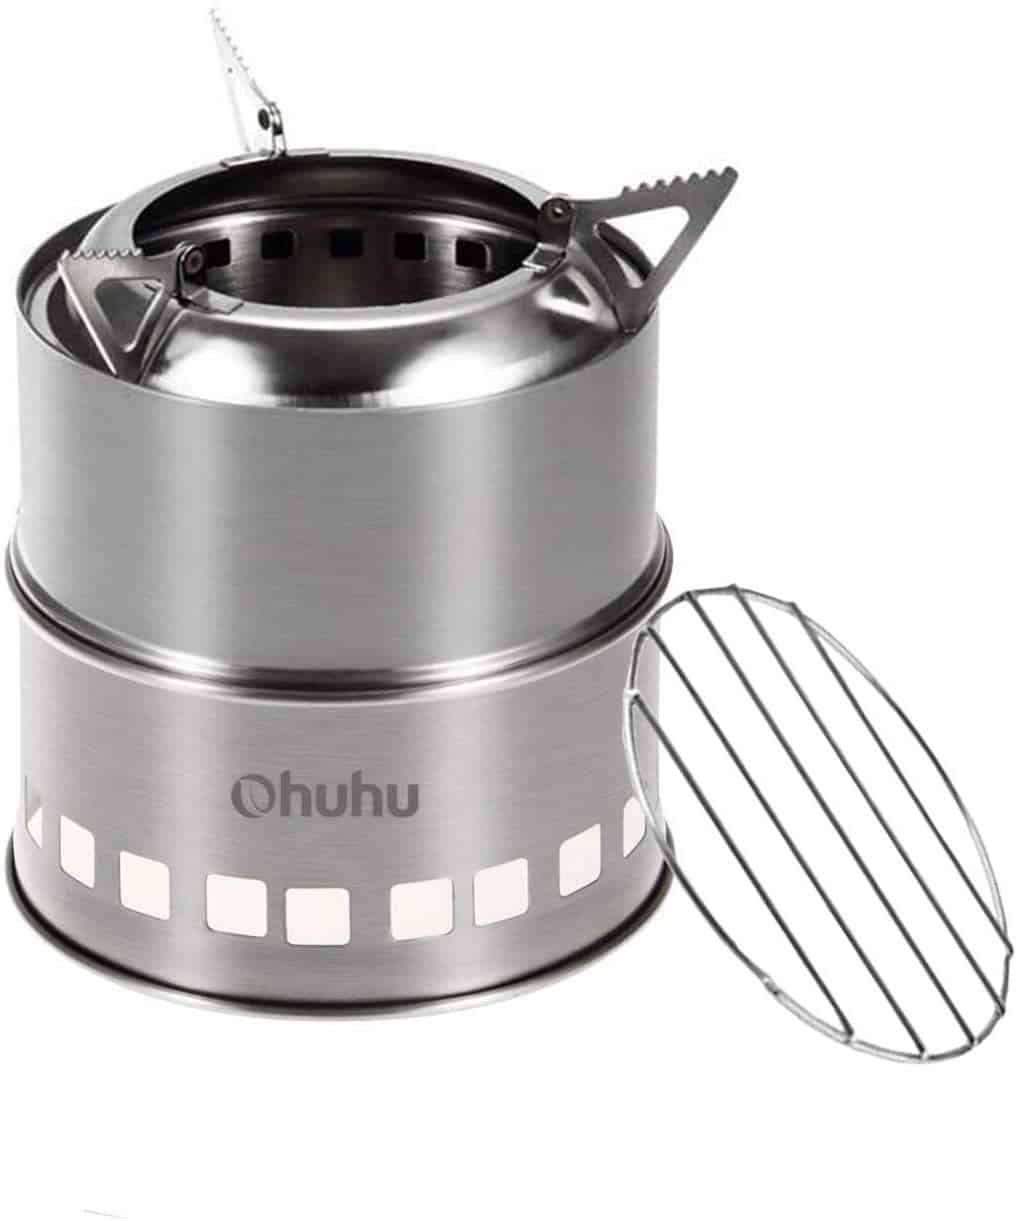 Ohuhu Stainless Steel Backpacking Potable Wood Burning Stoves